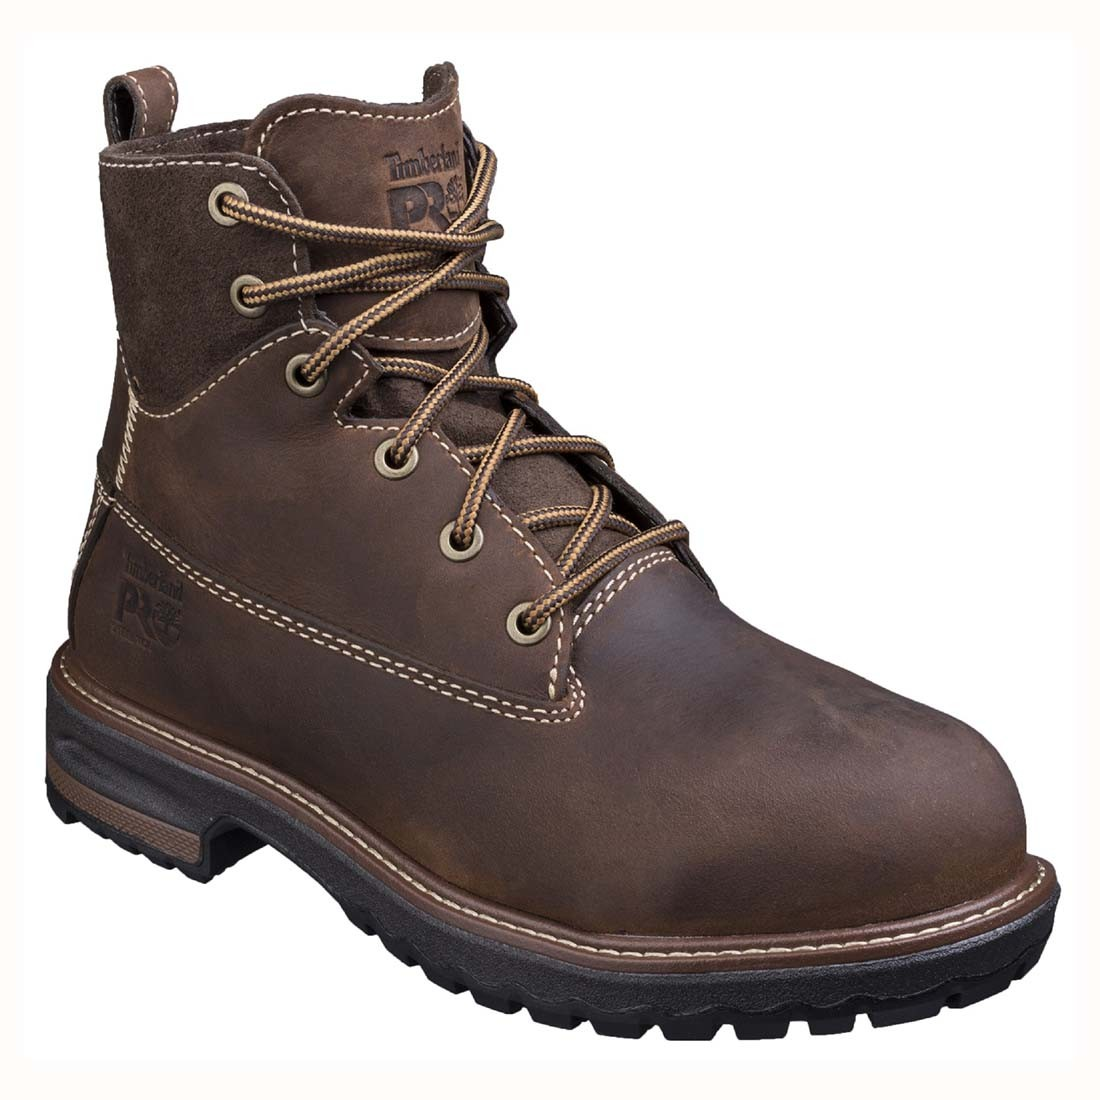 Timberland Pro Hightower S3 Water Resistant Ladies Safety Work Boots